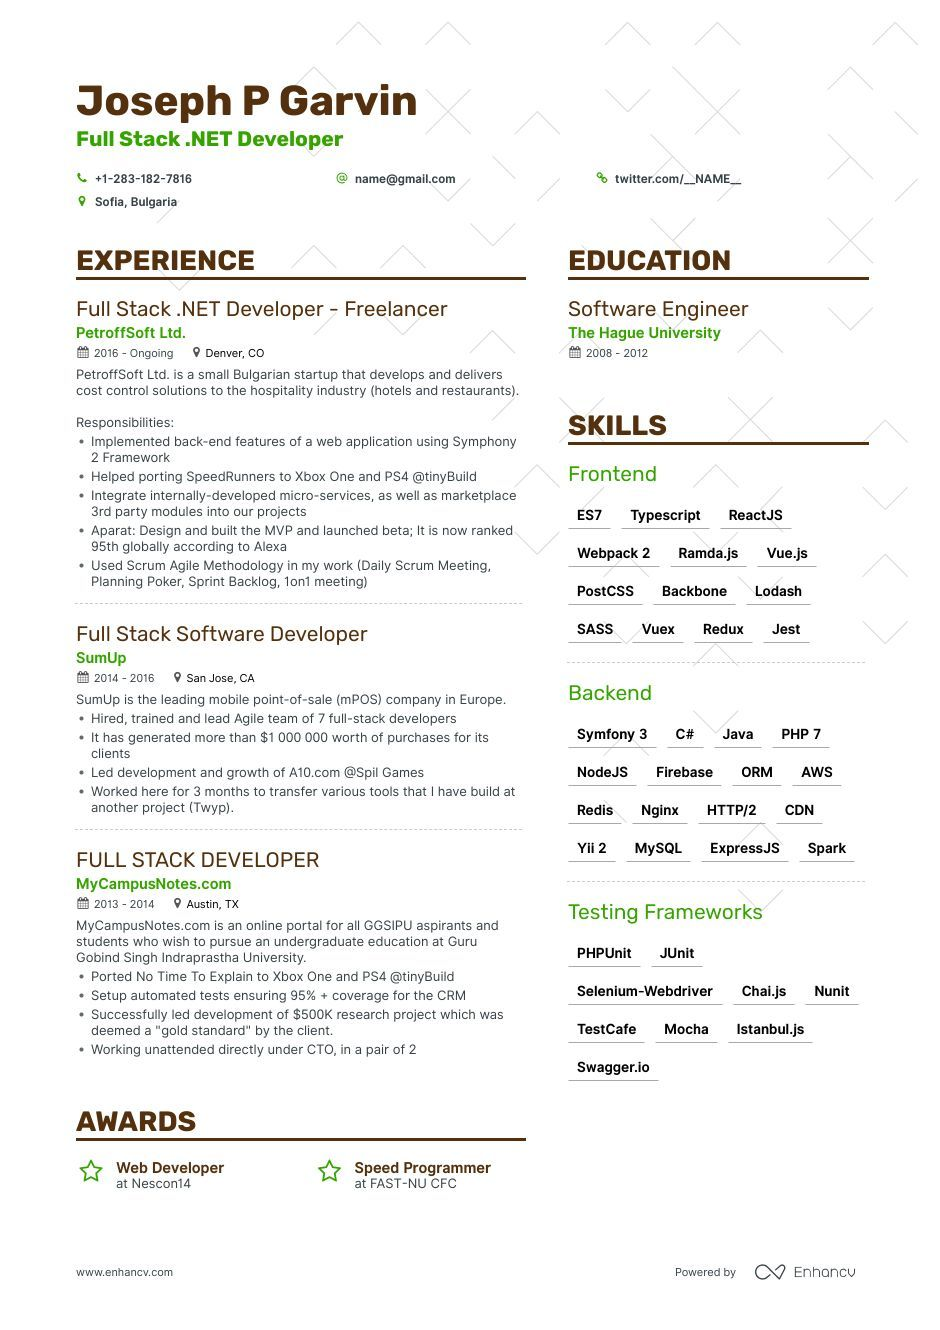 Full Stack Developer Resume 8 Step Ultimate Guide For 2020 With